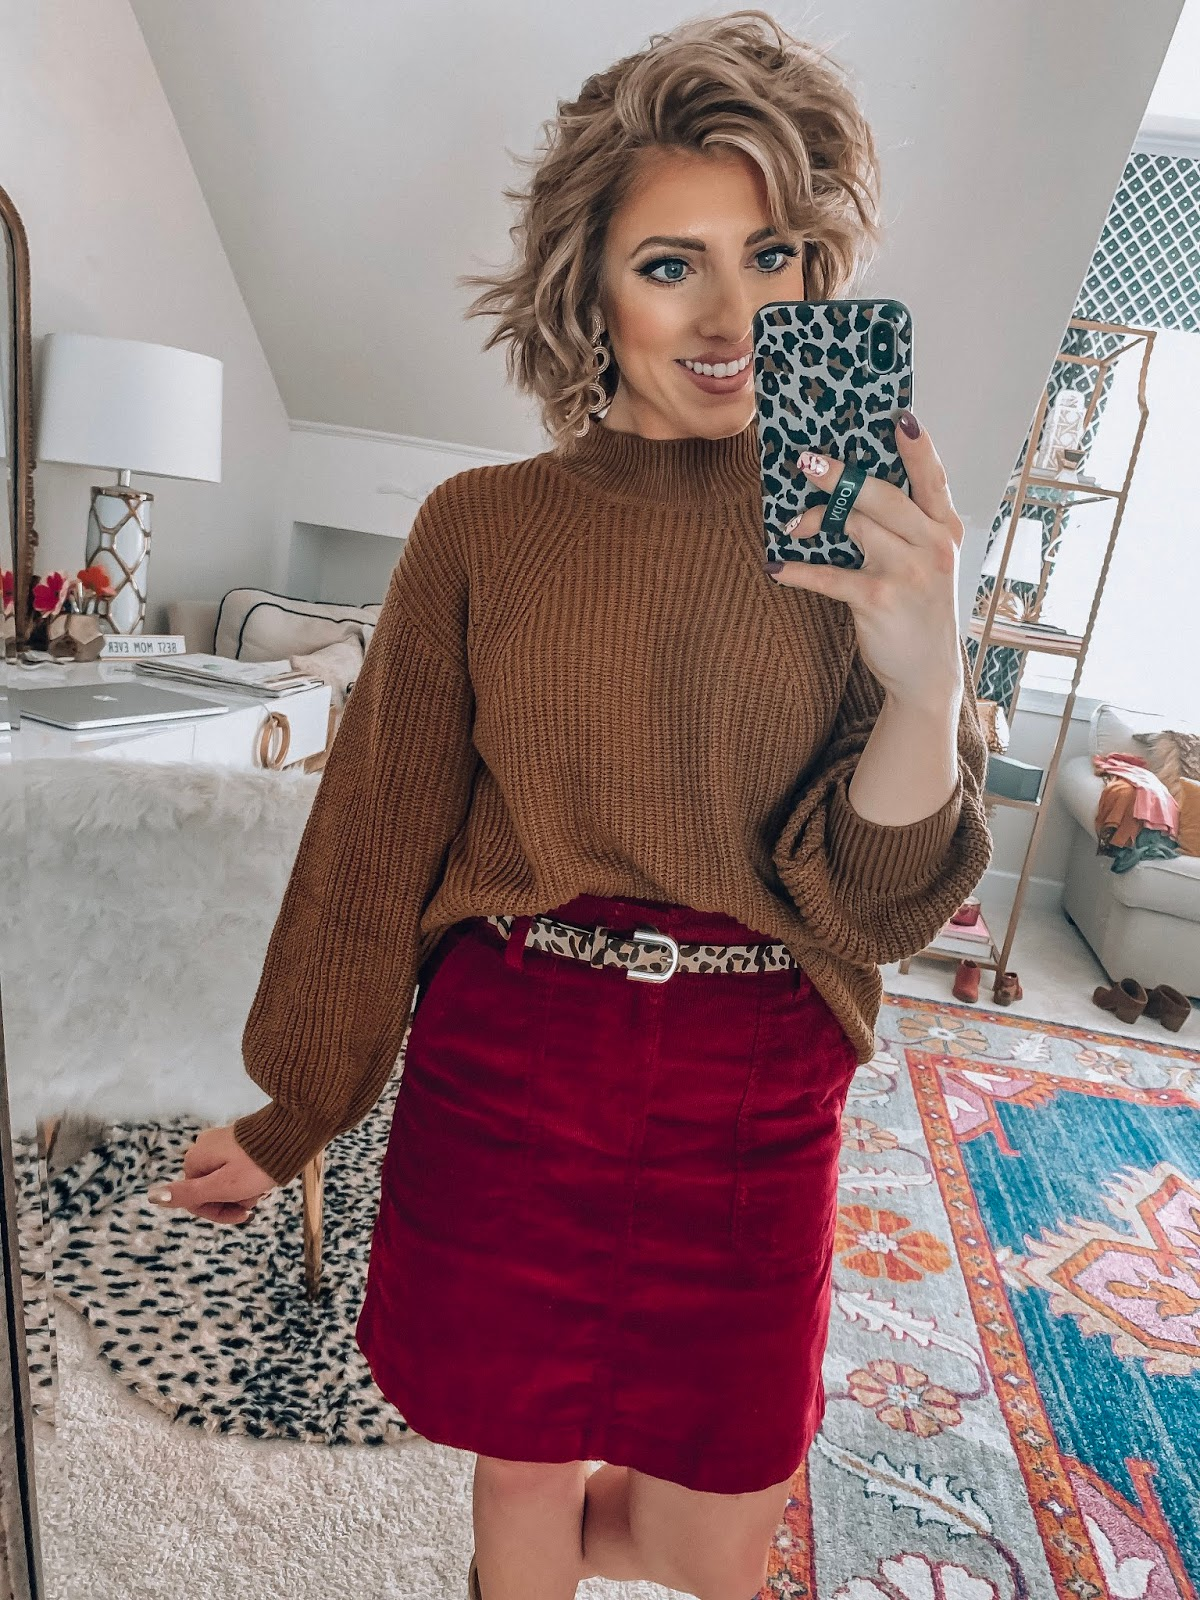 Old Navy Burgundy Cord Skirt + Mock Neck Sweater - Somethig Delightful Blog #affordablefashion